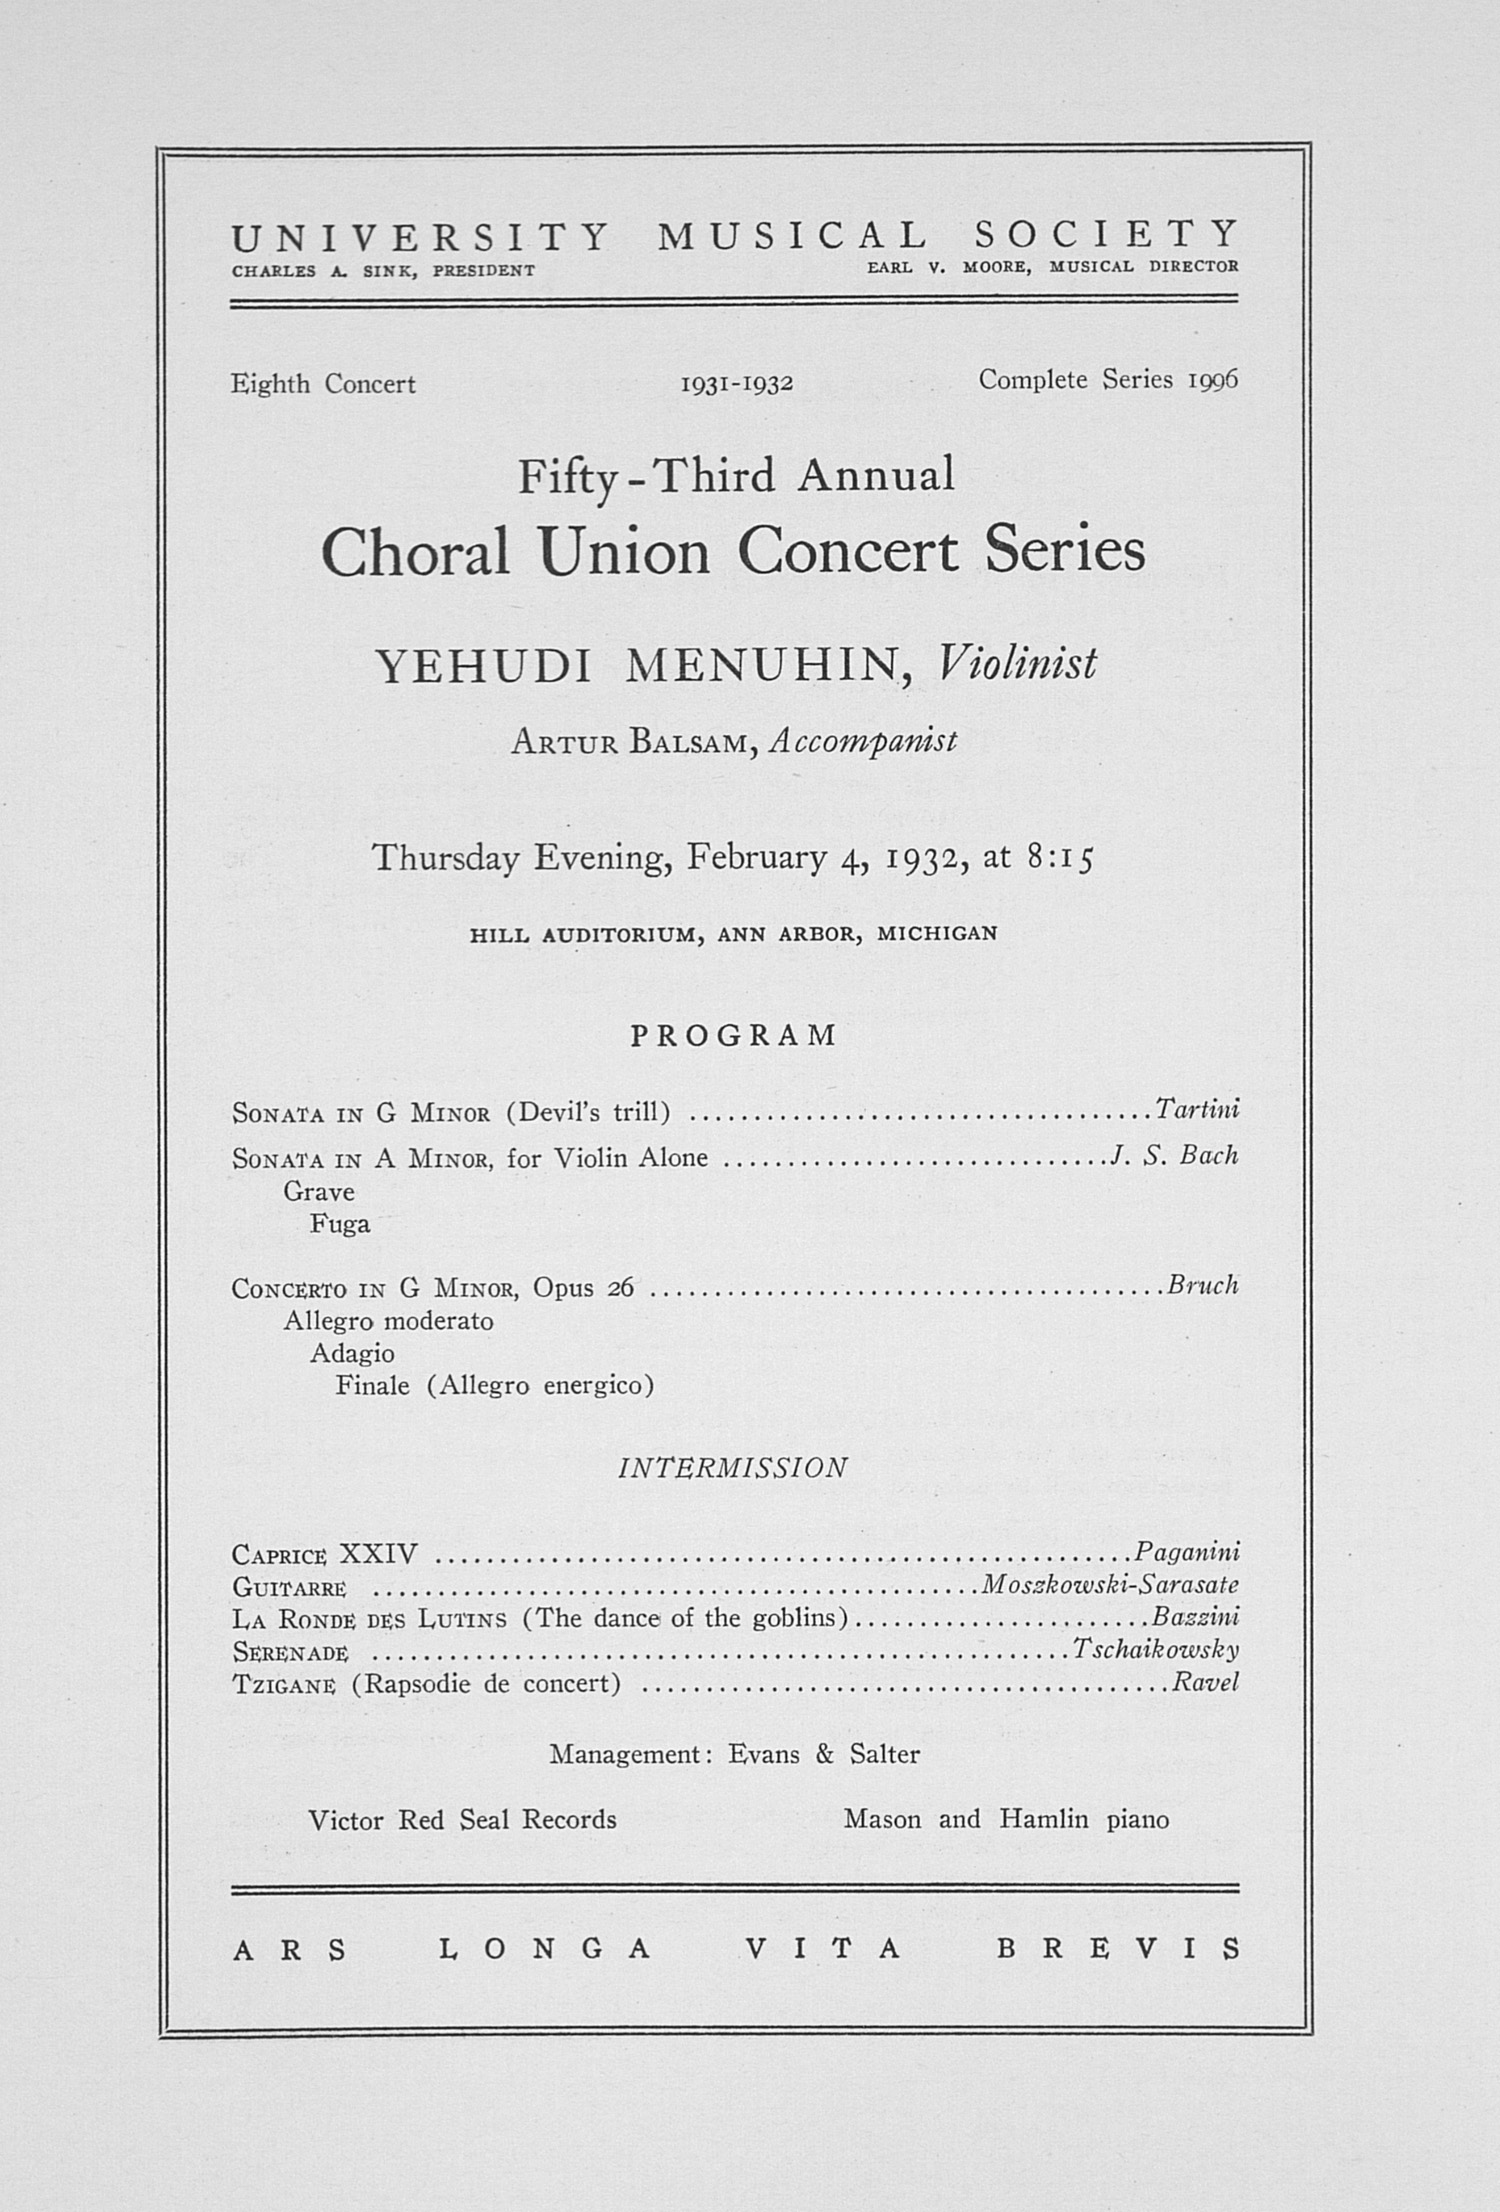 UMS Concert Program, February 4, 1932: Fifty-third Annual Choral Union Concert Series -- Yehudi Menuhin image